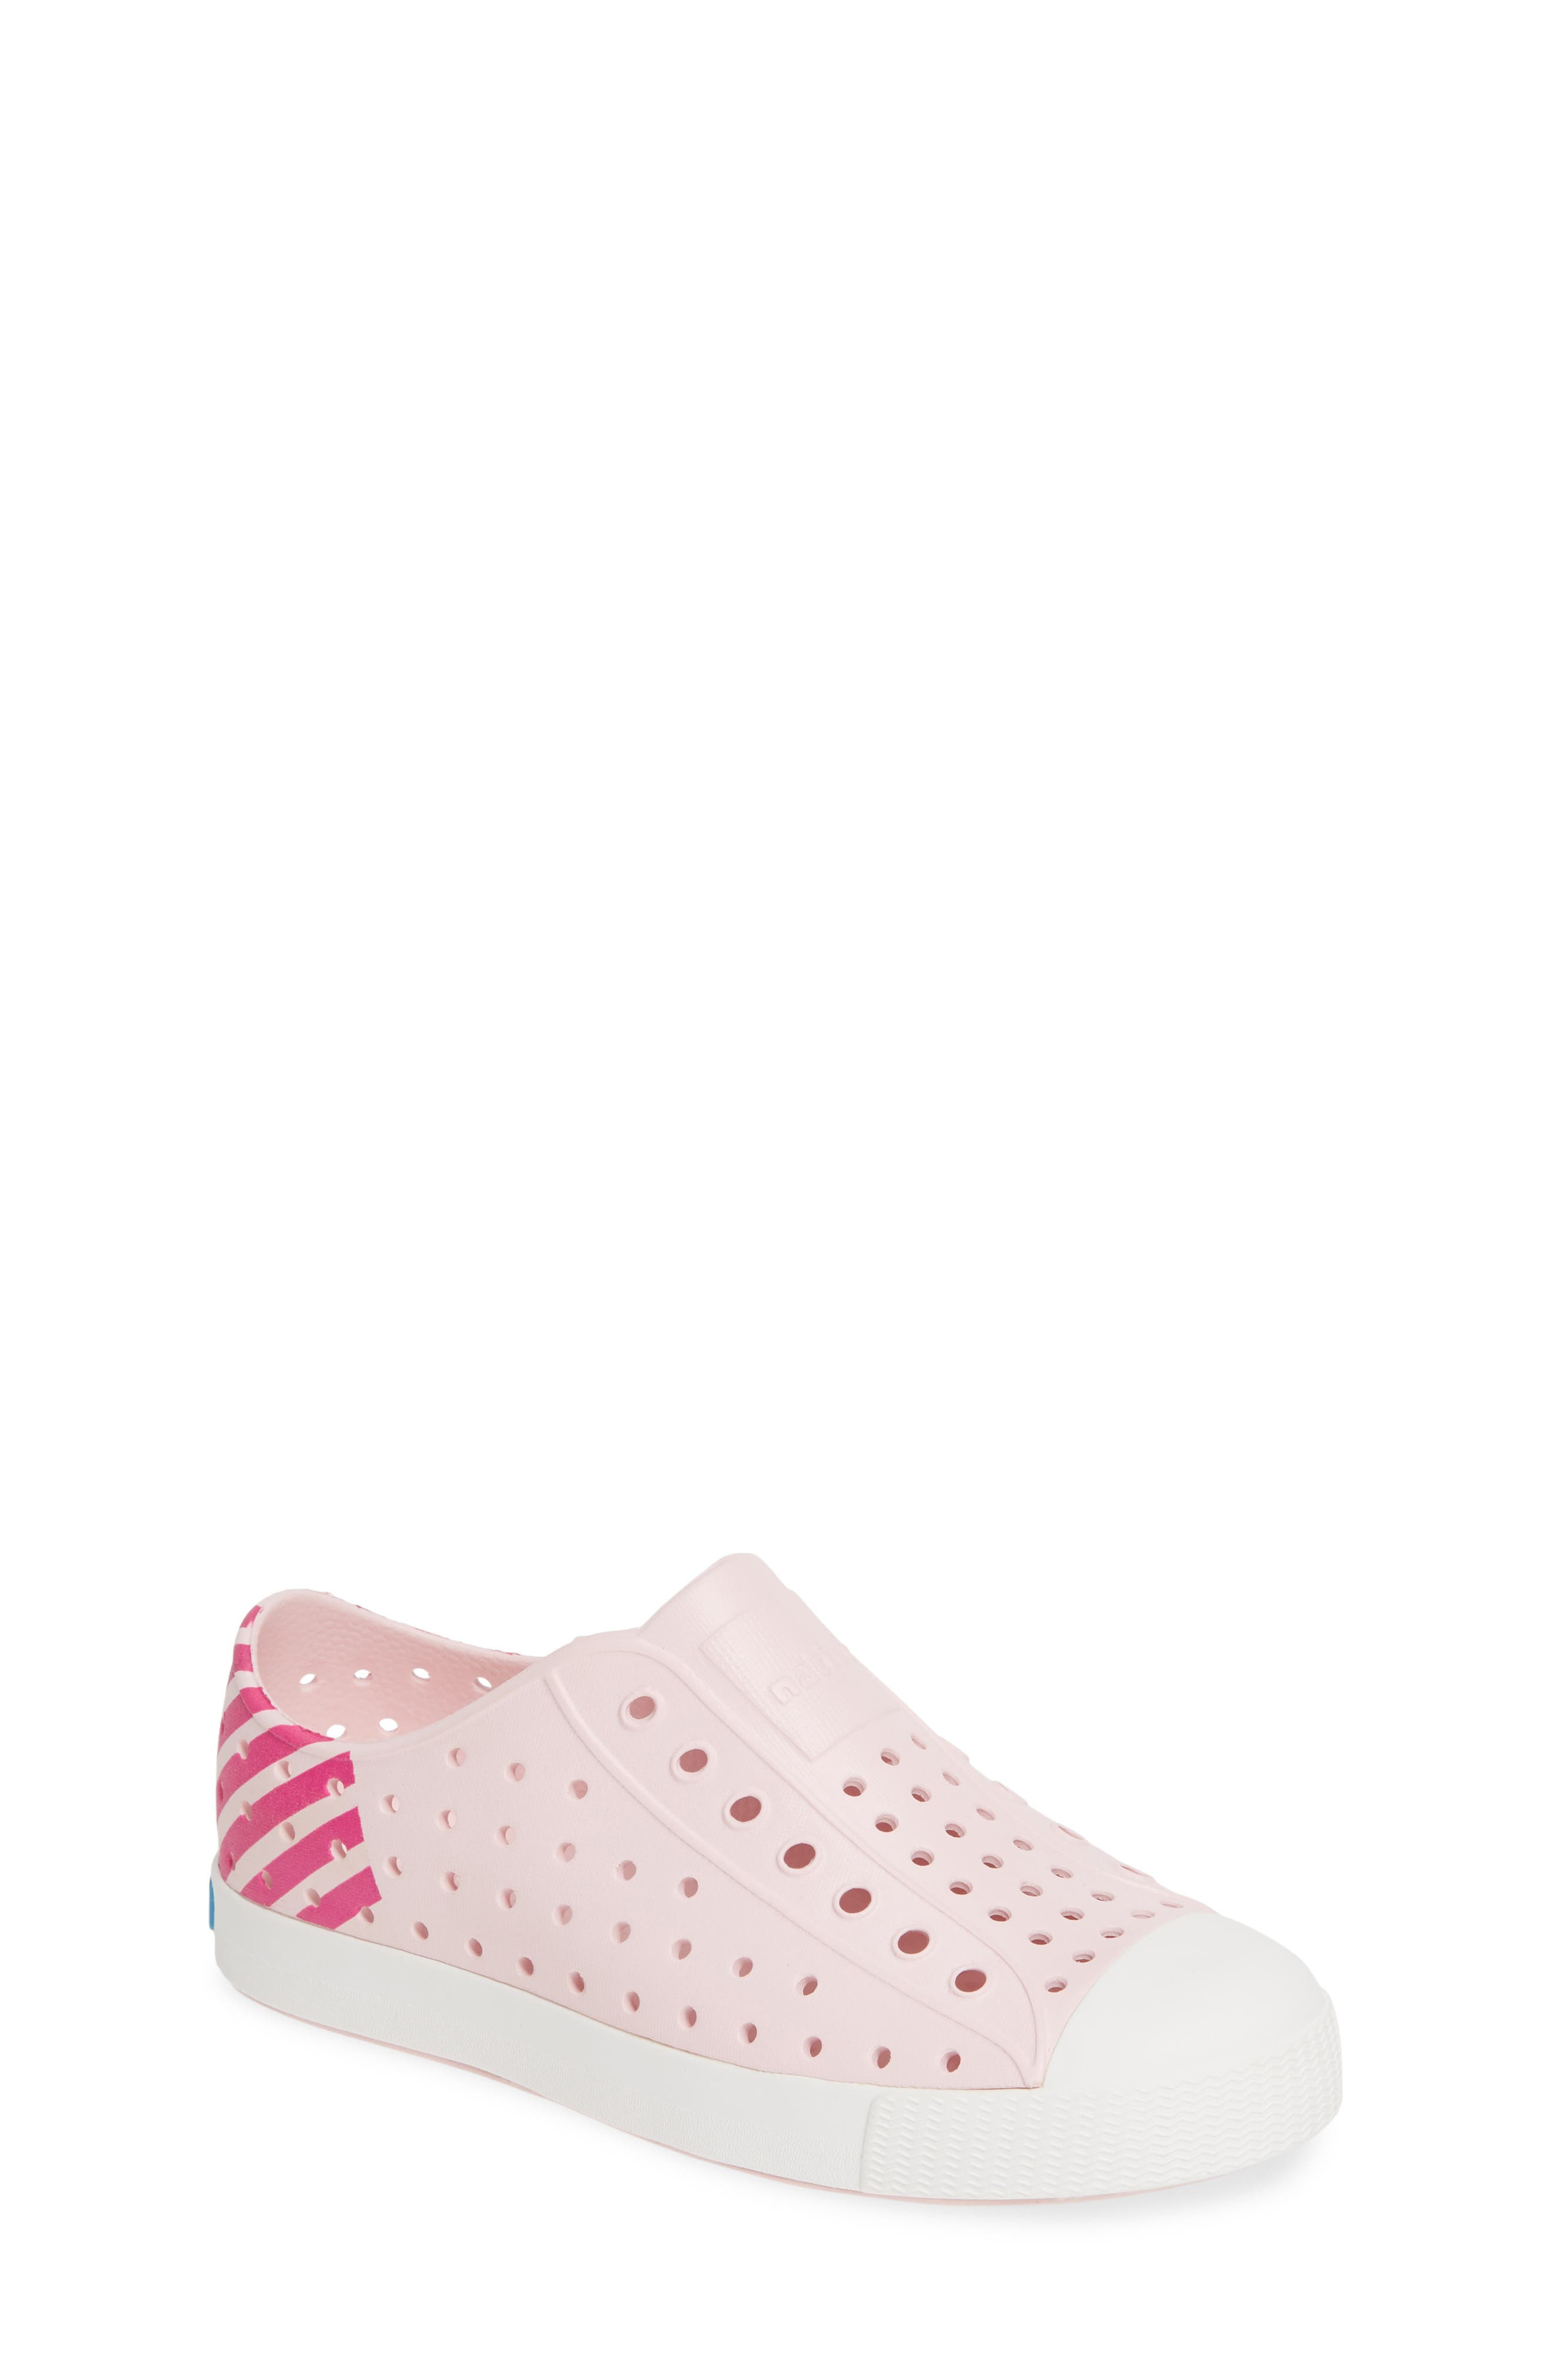 Baby Shoes Cheap Sale New Cute Polka Dot Baby Shoes Butterfly-knot Baby Dress Shoes For Girls Grade Products According To Quality